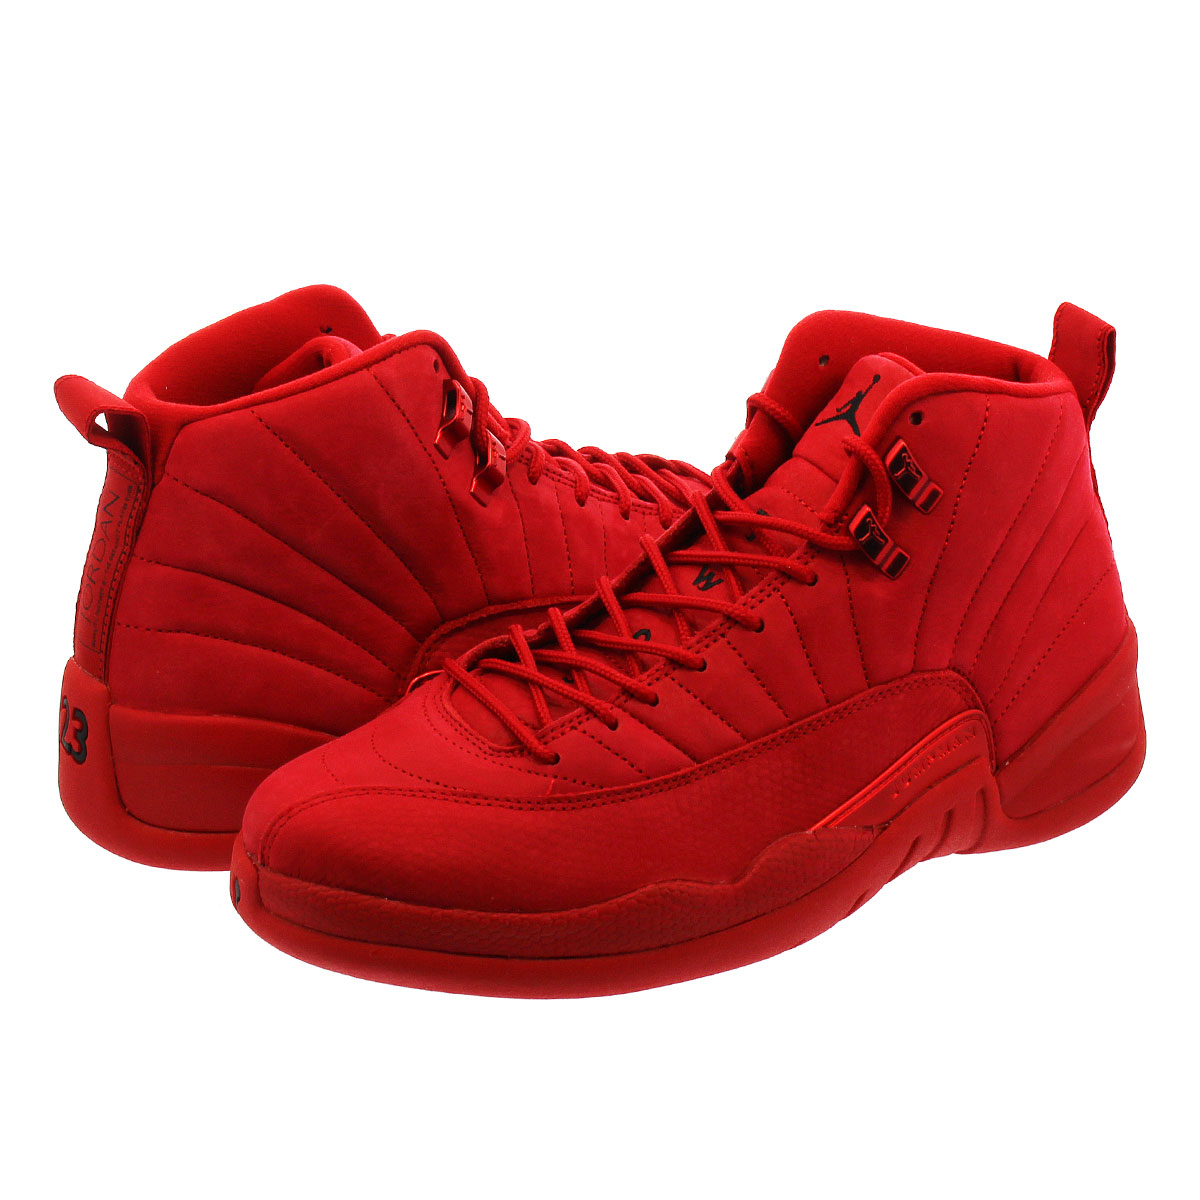 sale retailer c8c26 a6506 NIKE AIR JORDAN 12 RETRO Nike Air Jordan 12 nostalgic GYM RED/BLACK  130,690-601